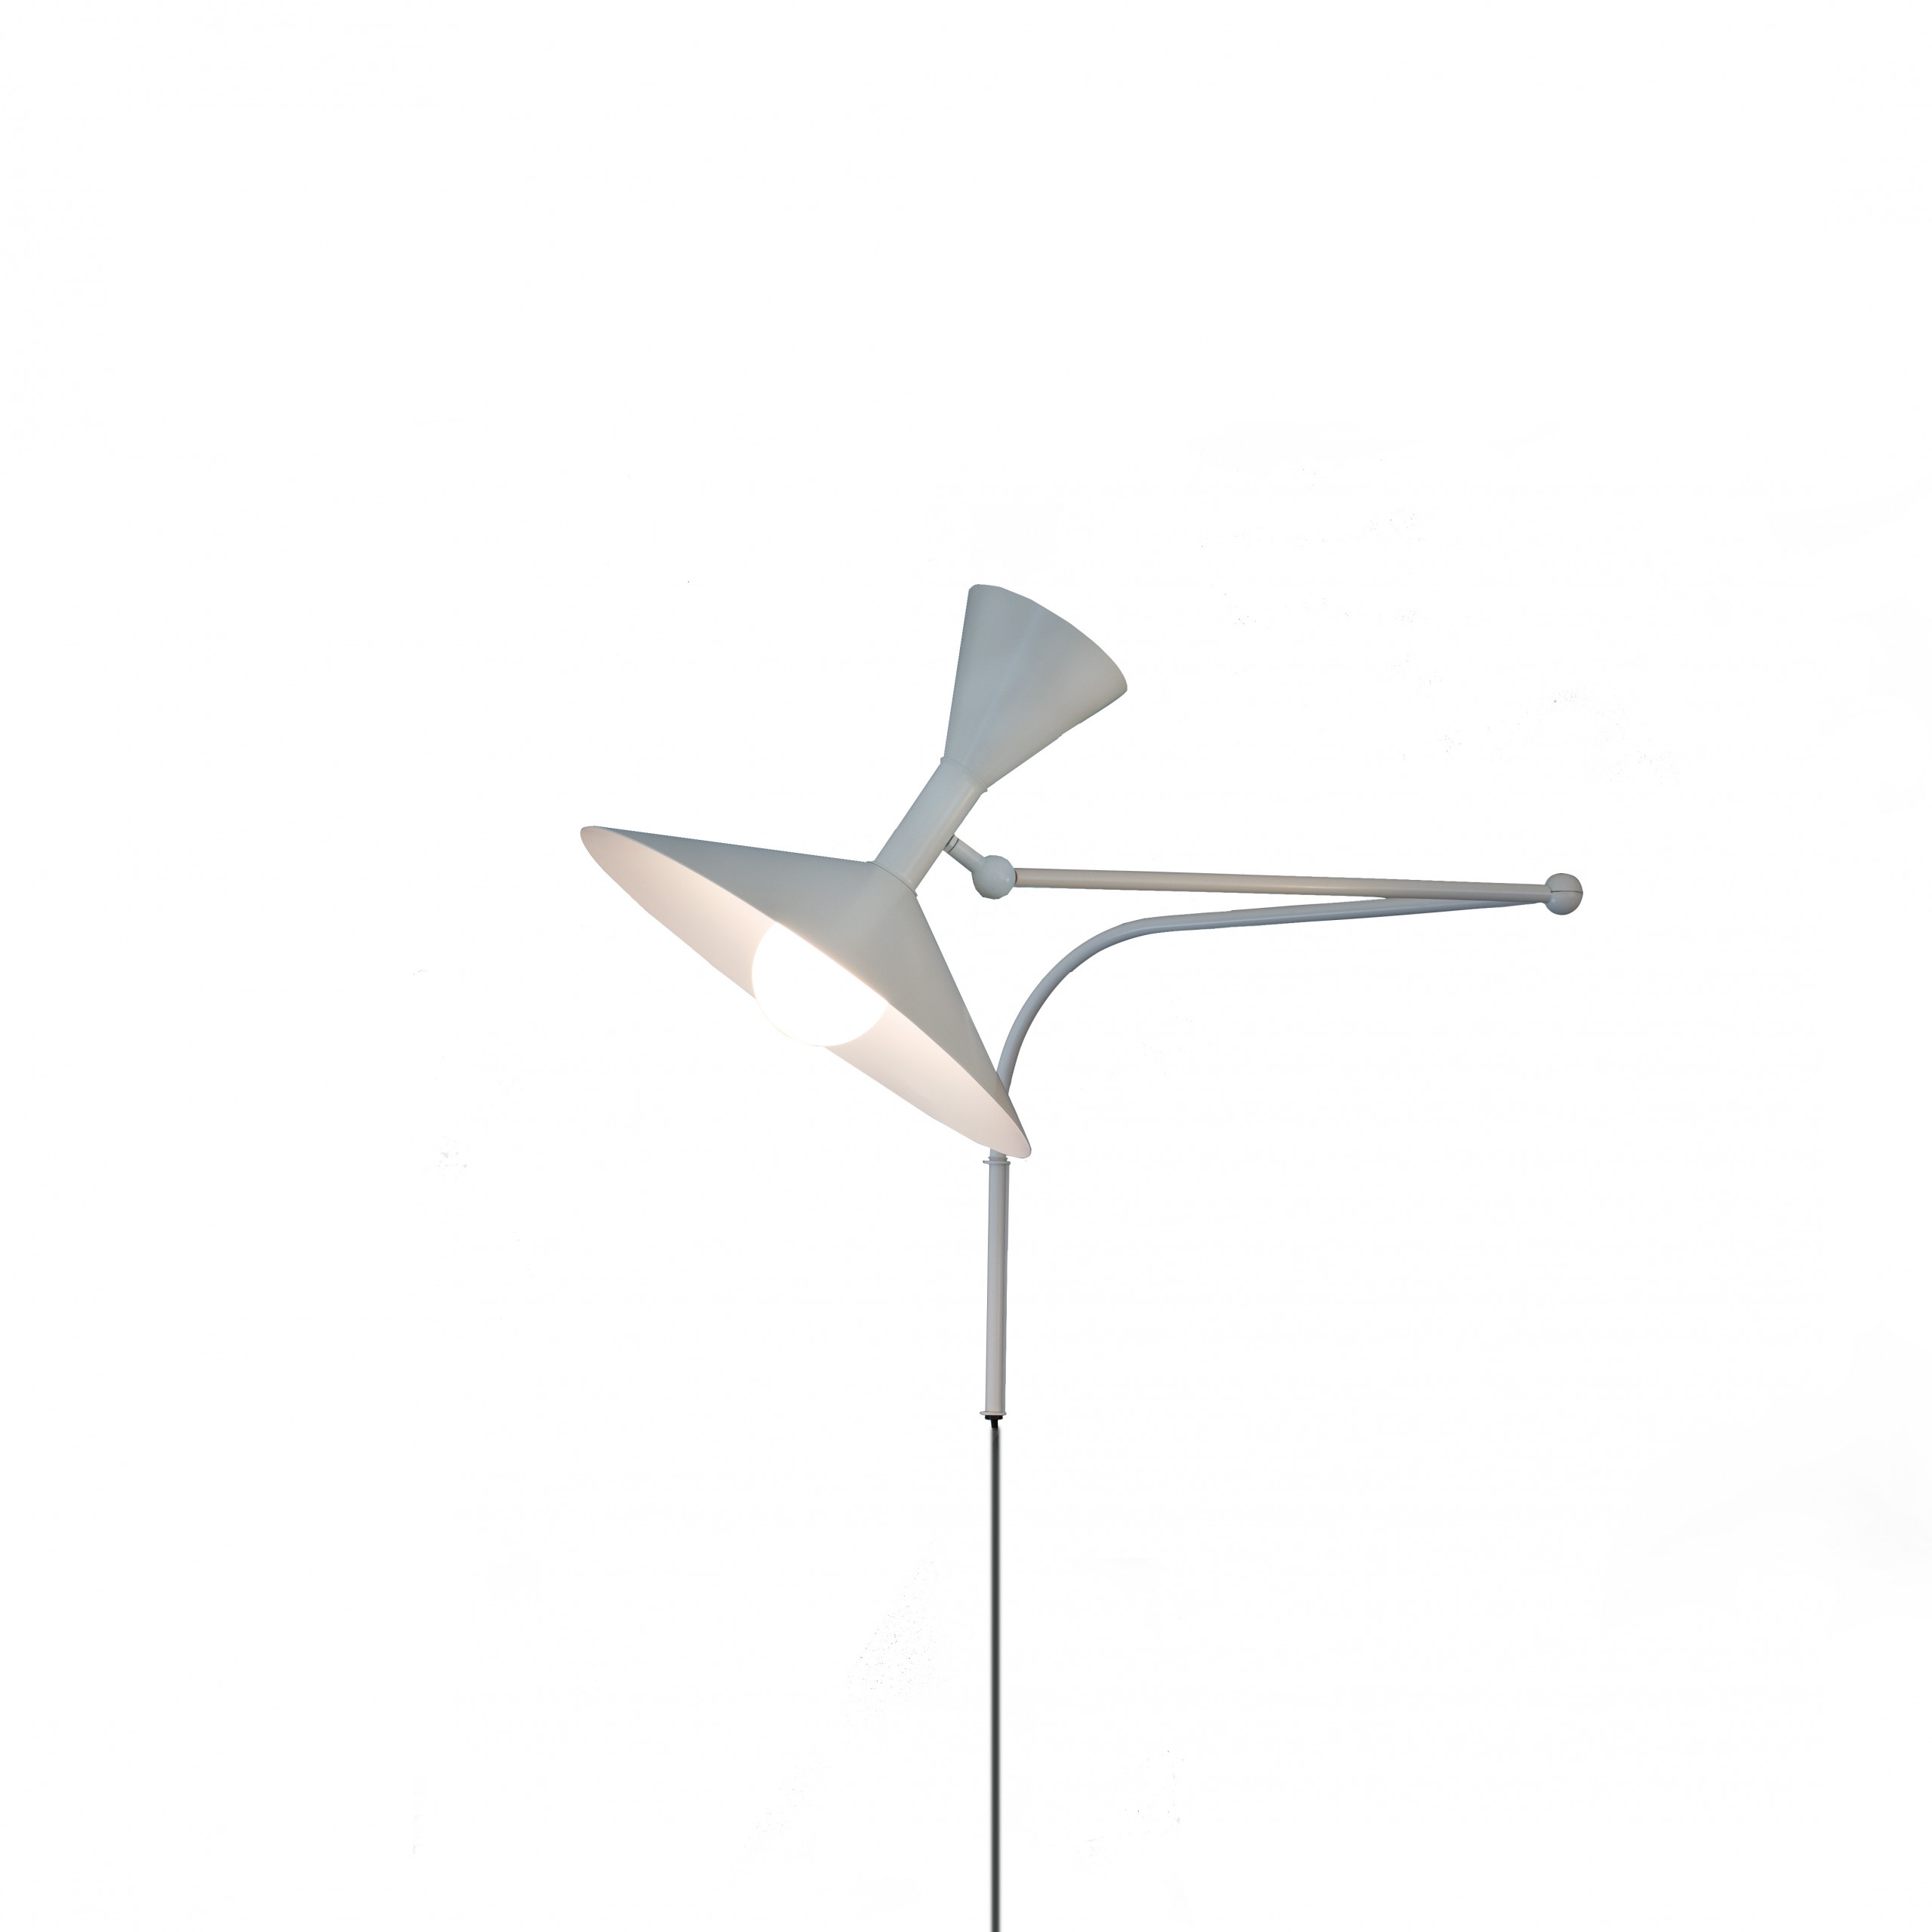 Lampe de Marseille Wall Lamp - Designed by Le Corbusier for the Unité d'Habitation of Marseille in 1949/1952, Lampe de Marseille is an adjustable wall lamp with two joints on the arm and a rotating wall fixing.